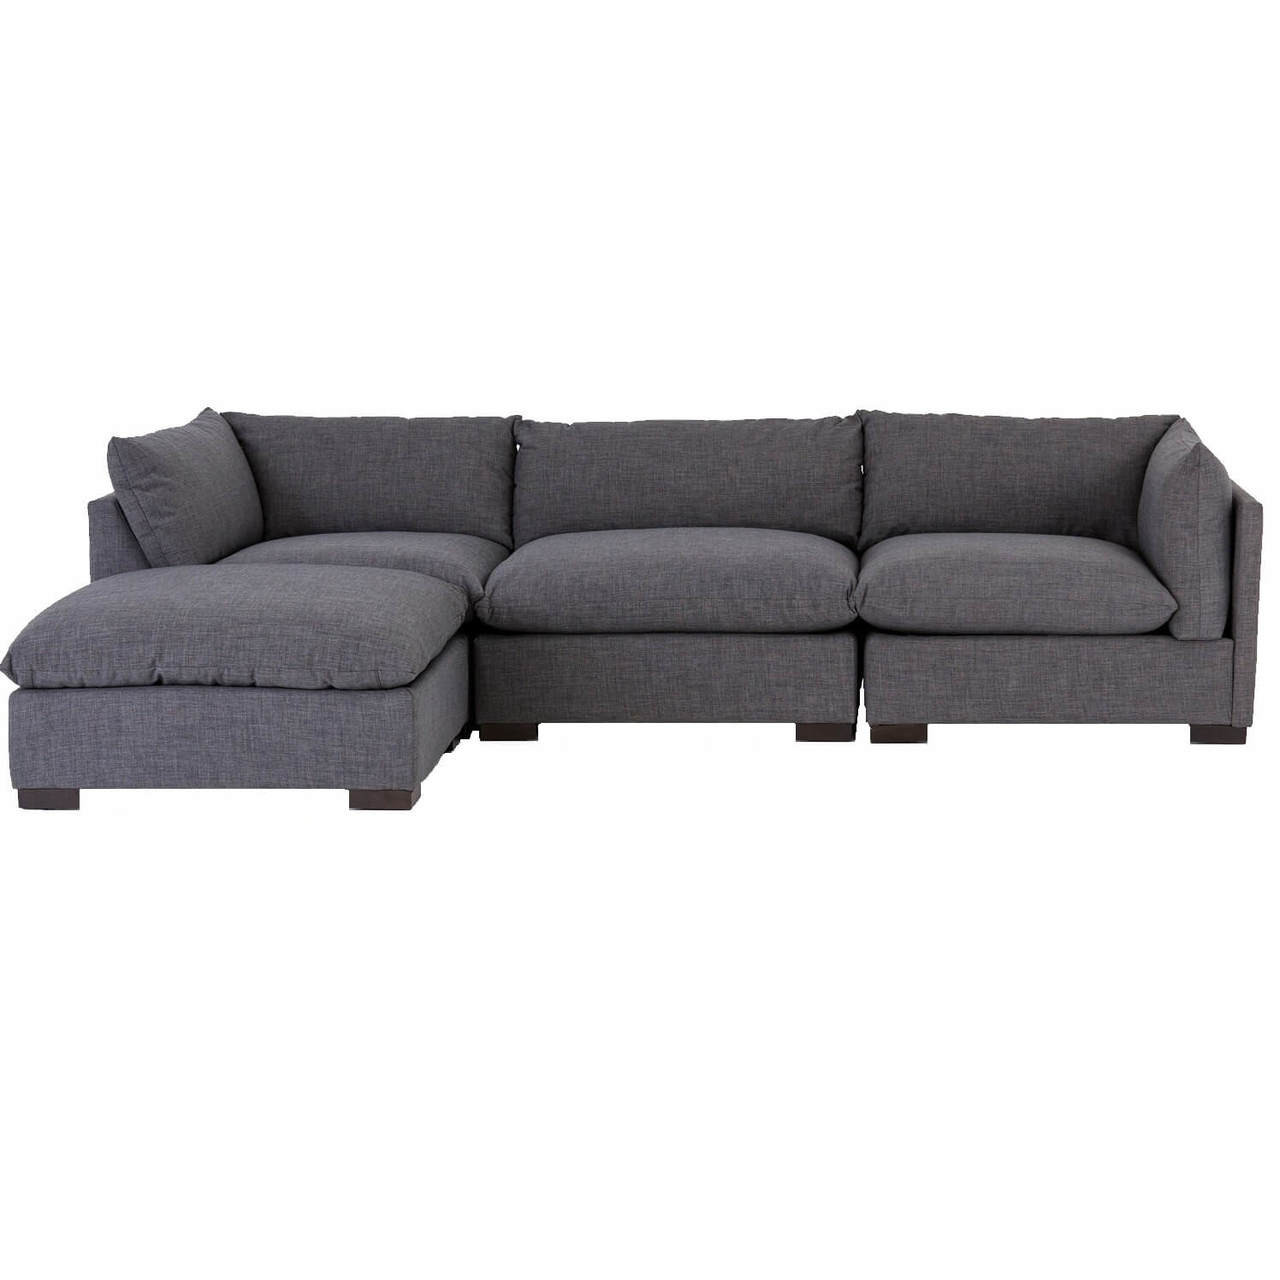 Westworld Modern Gray 4 Piece Modular Lounge Sectional